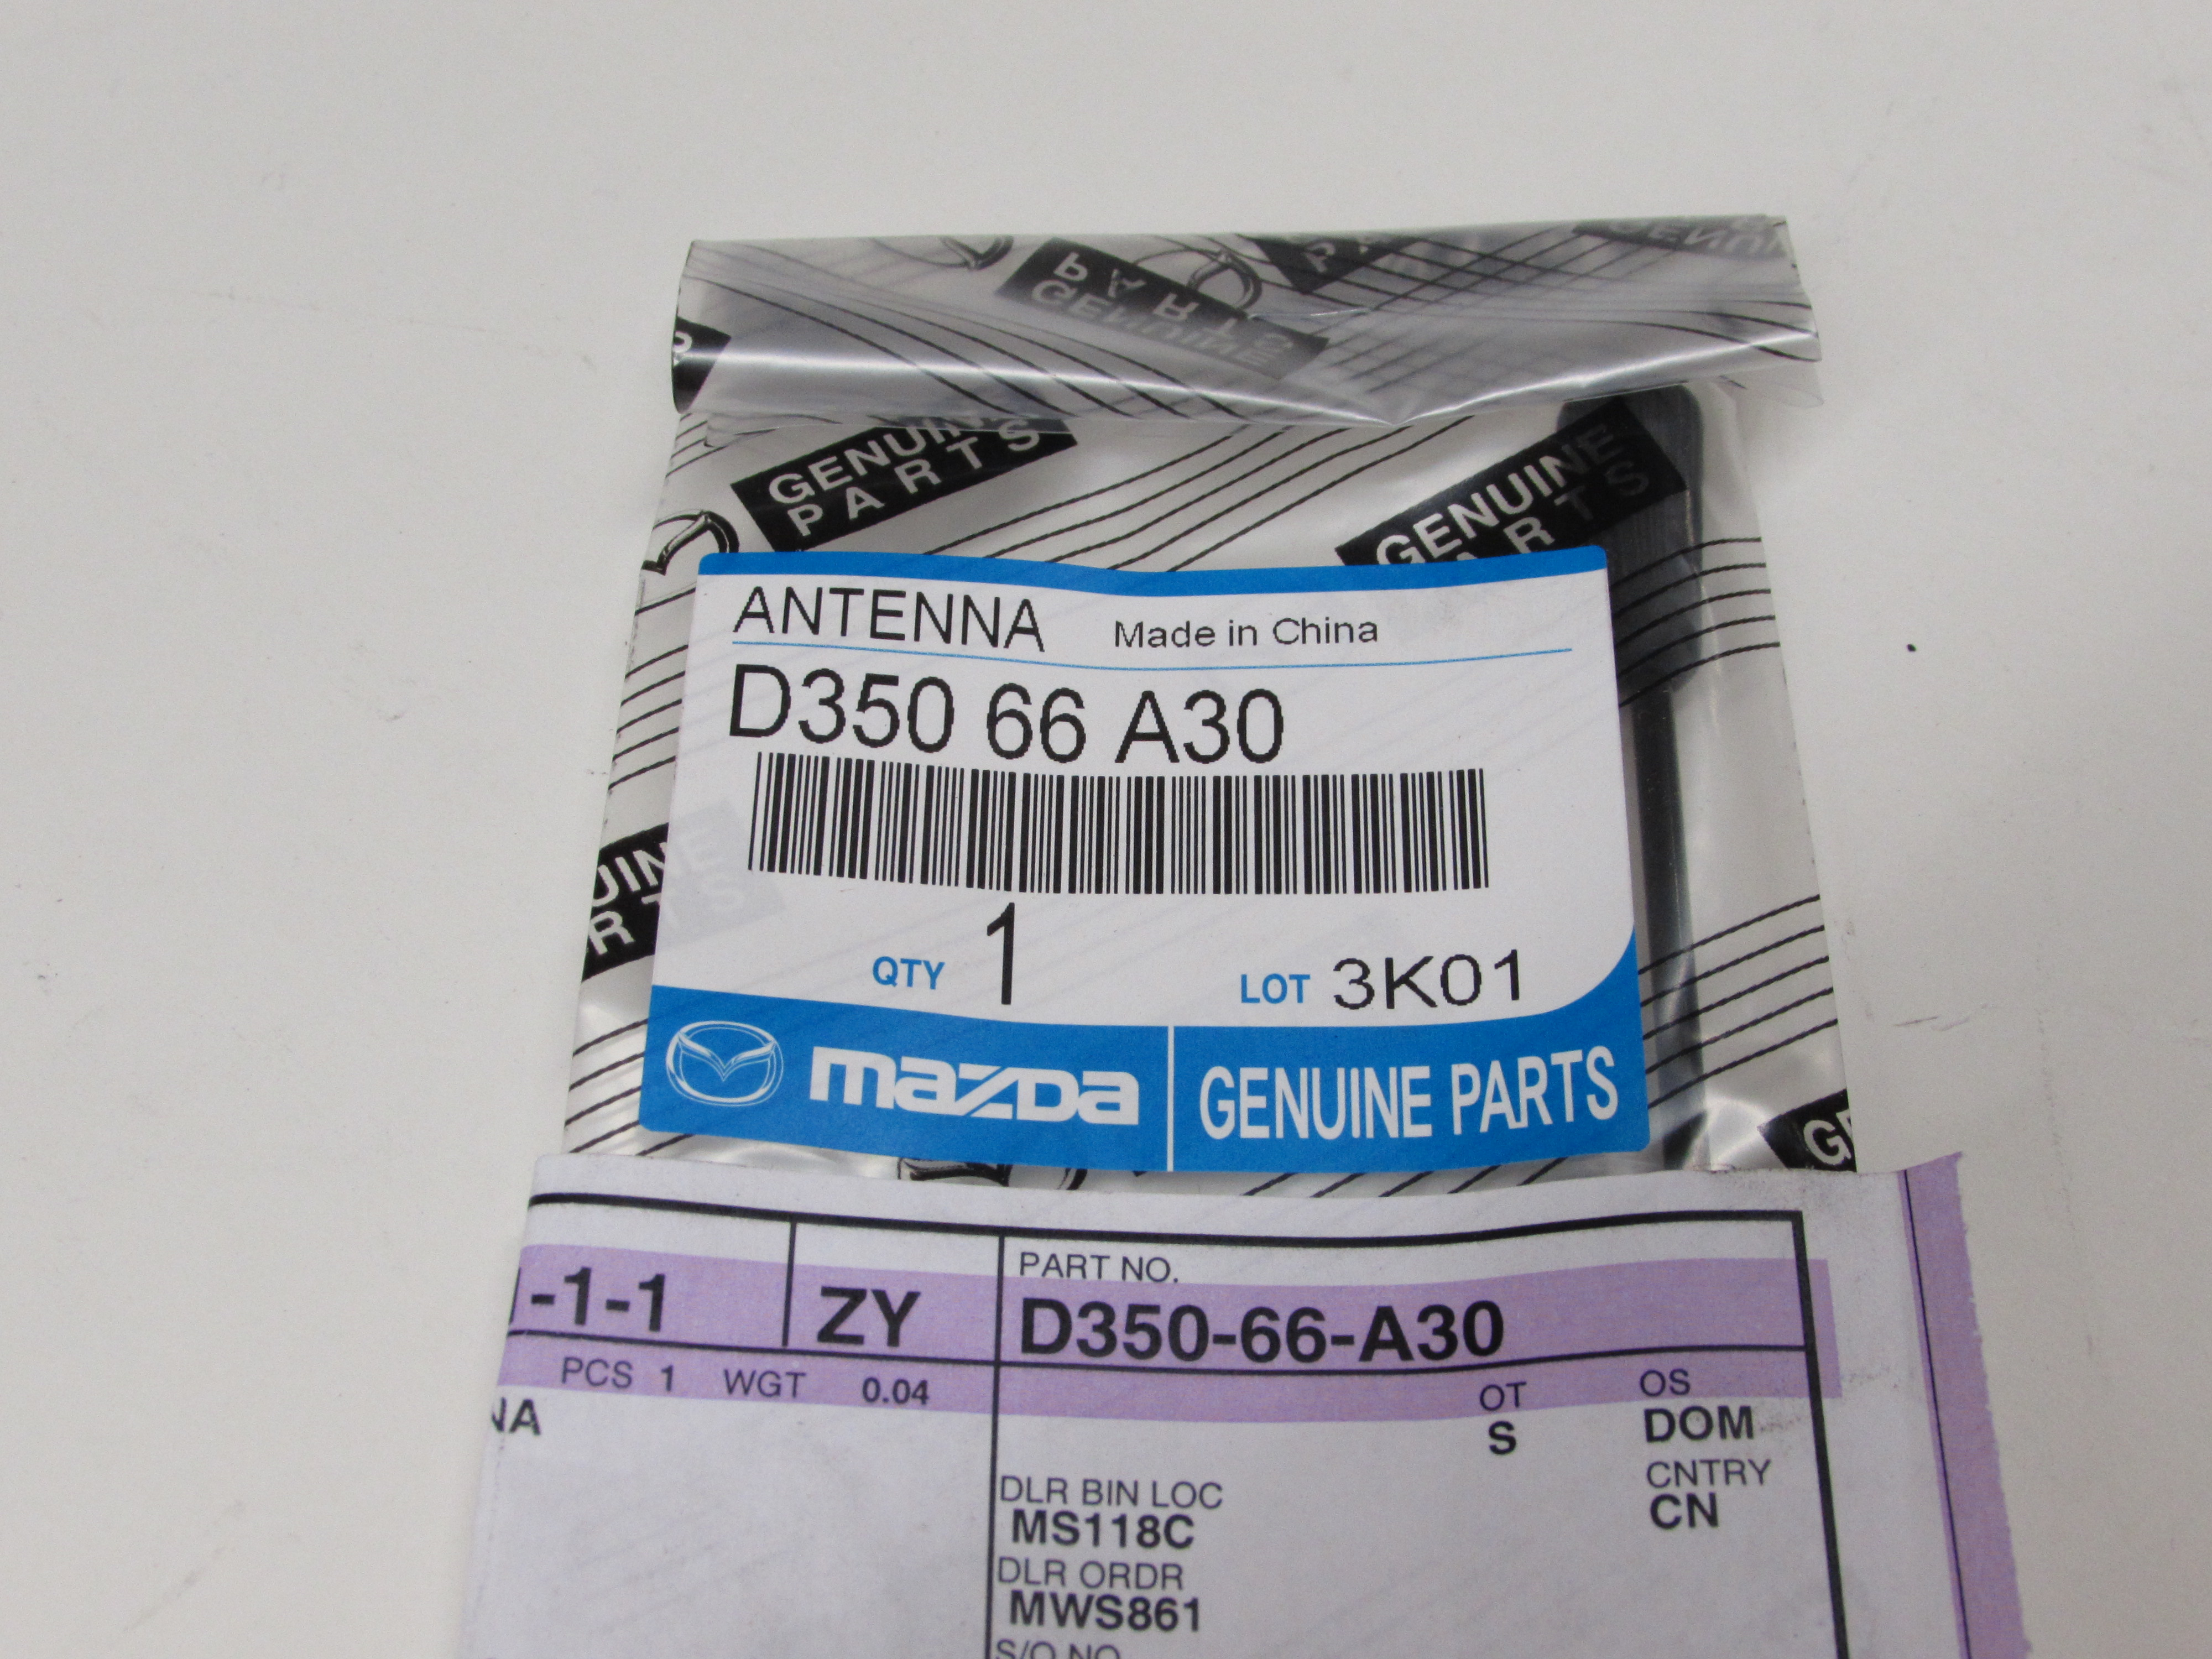 2011 2014 Mazda 2 Roof Aerial Radio Antenna Rod Mast Oem New Genuine Chrysler Wiring Harness D350 66 A30 Quirk Parts